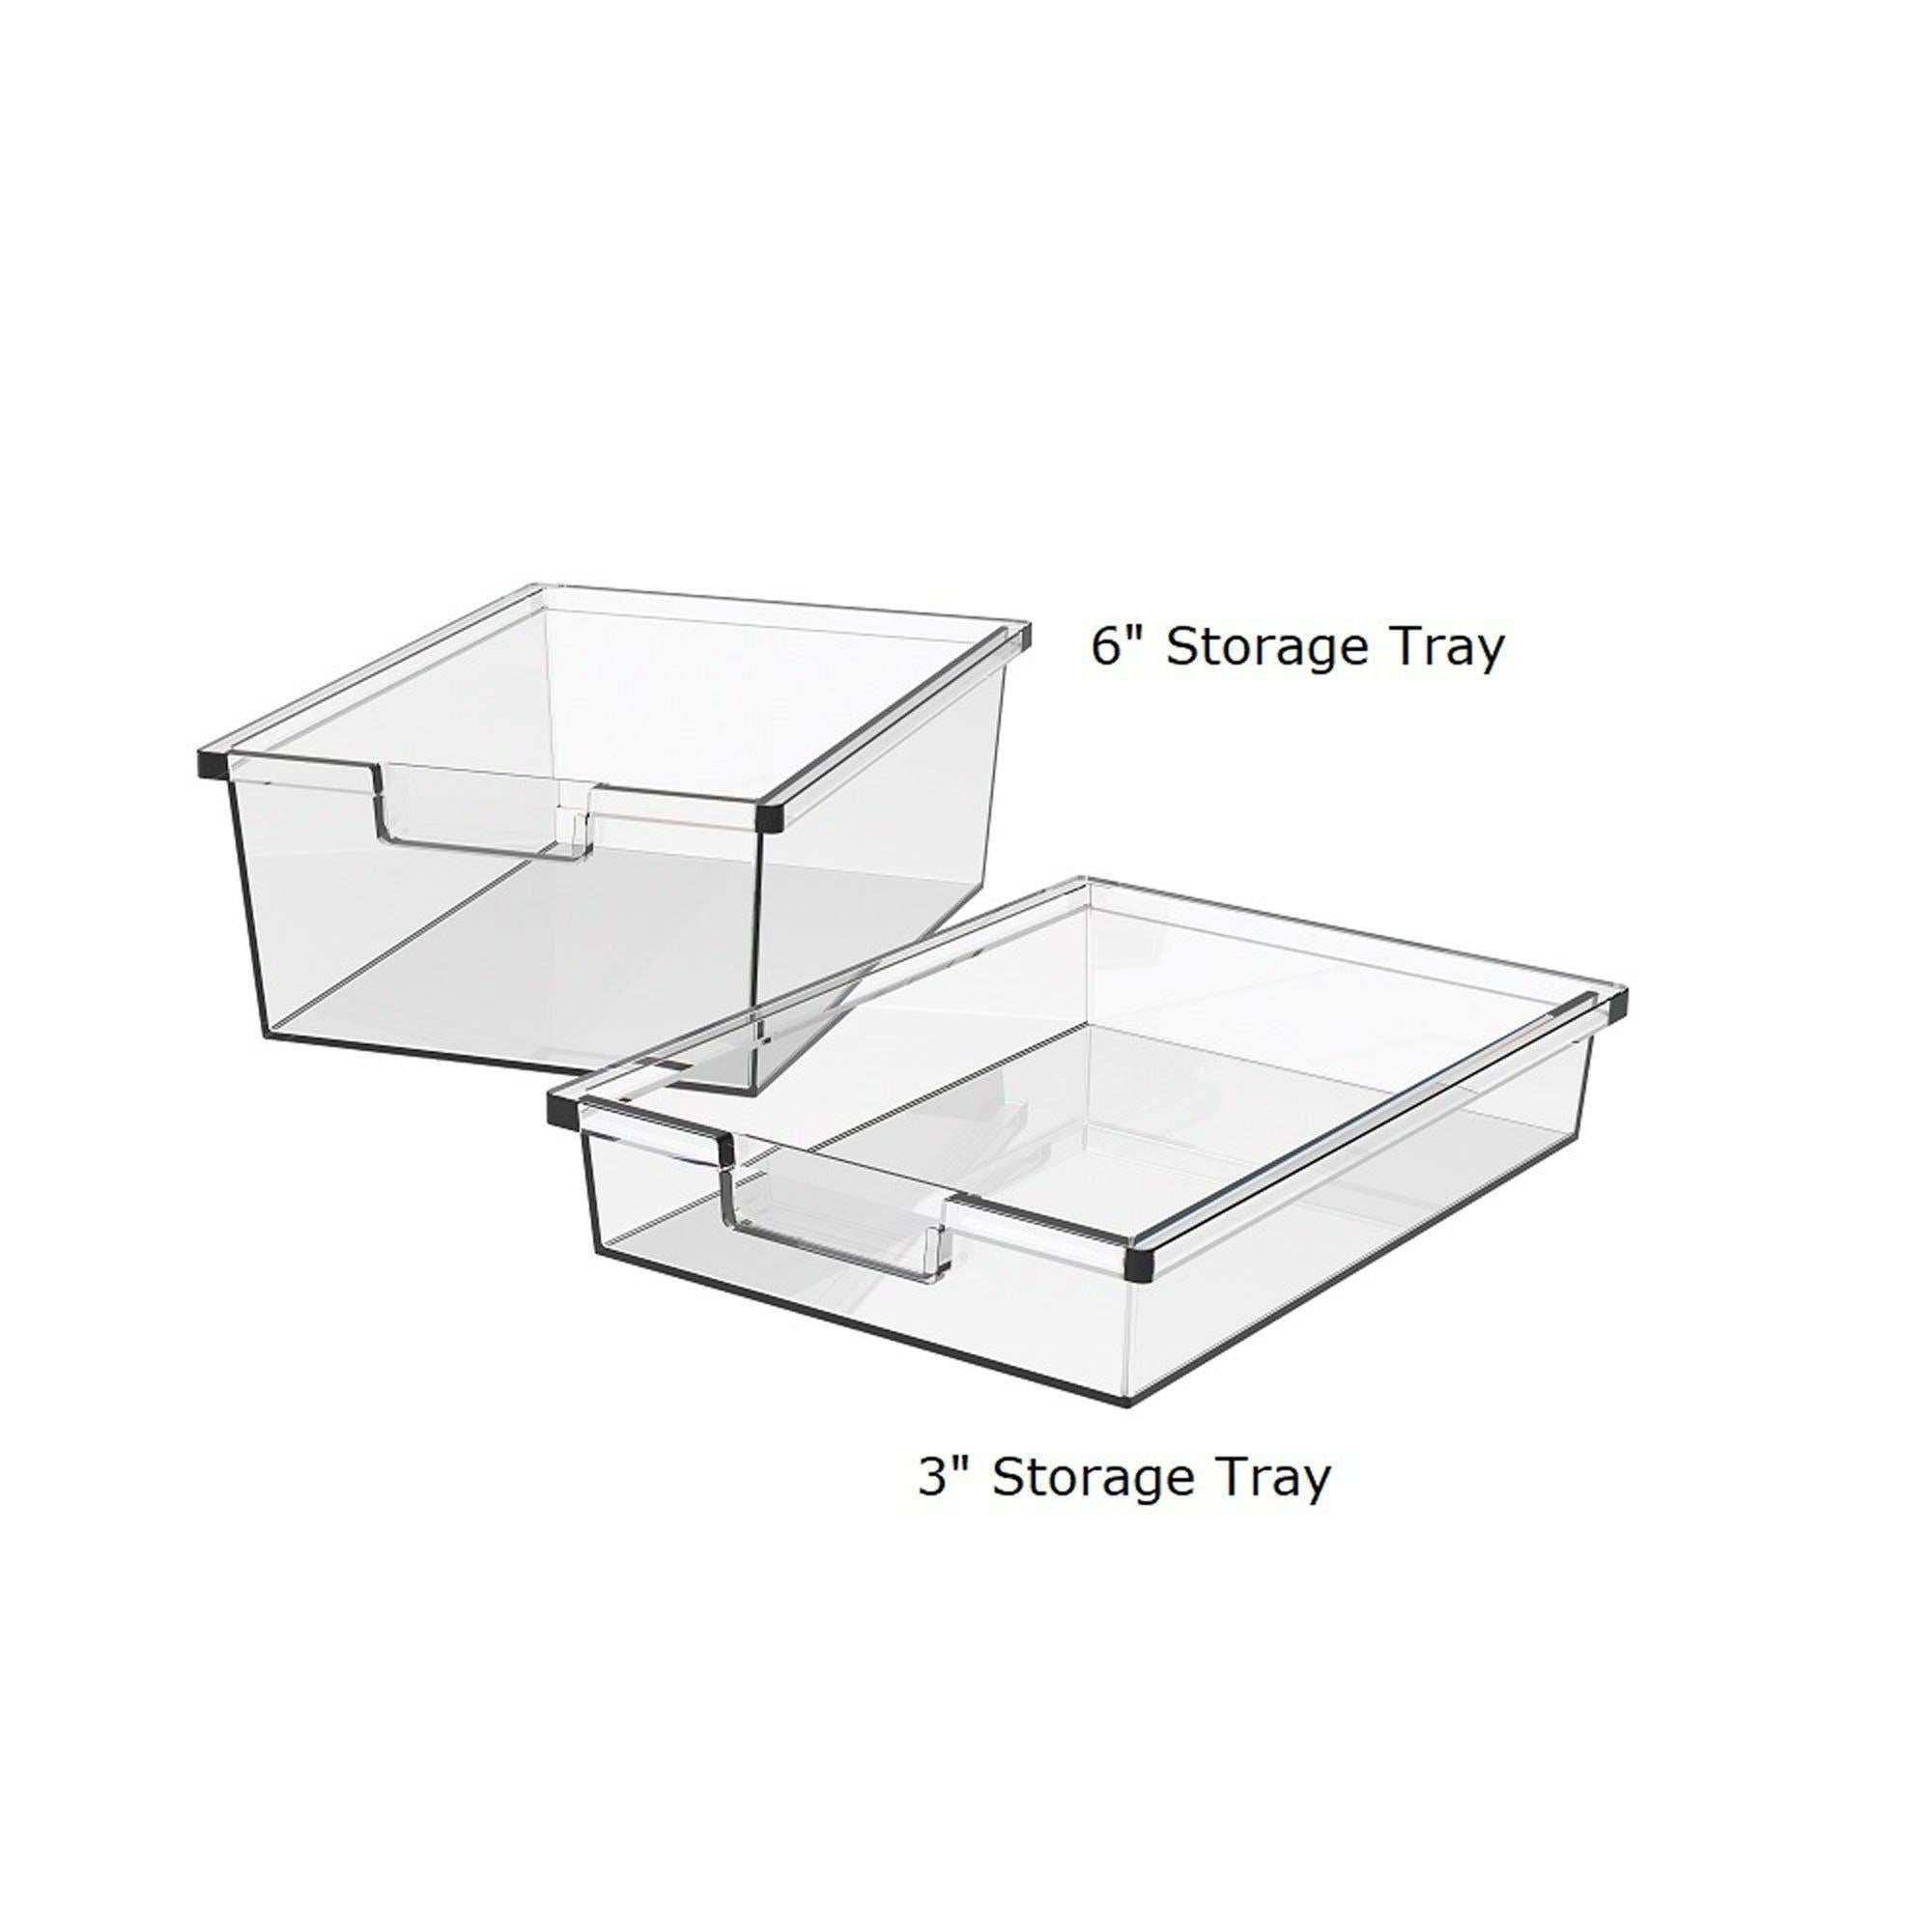 Storage Trays for Makerspace Mobile Storage Carts-Storage Cabinets & Shelving-